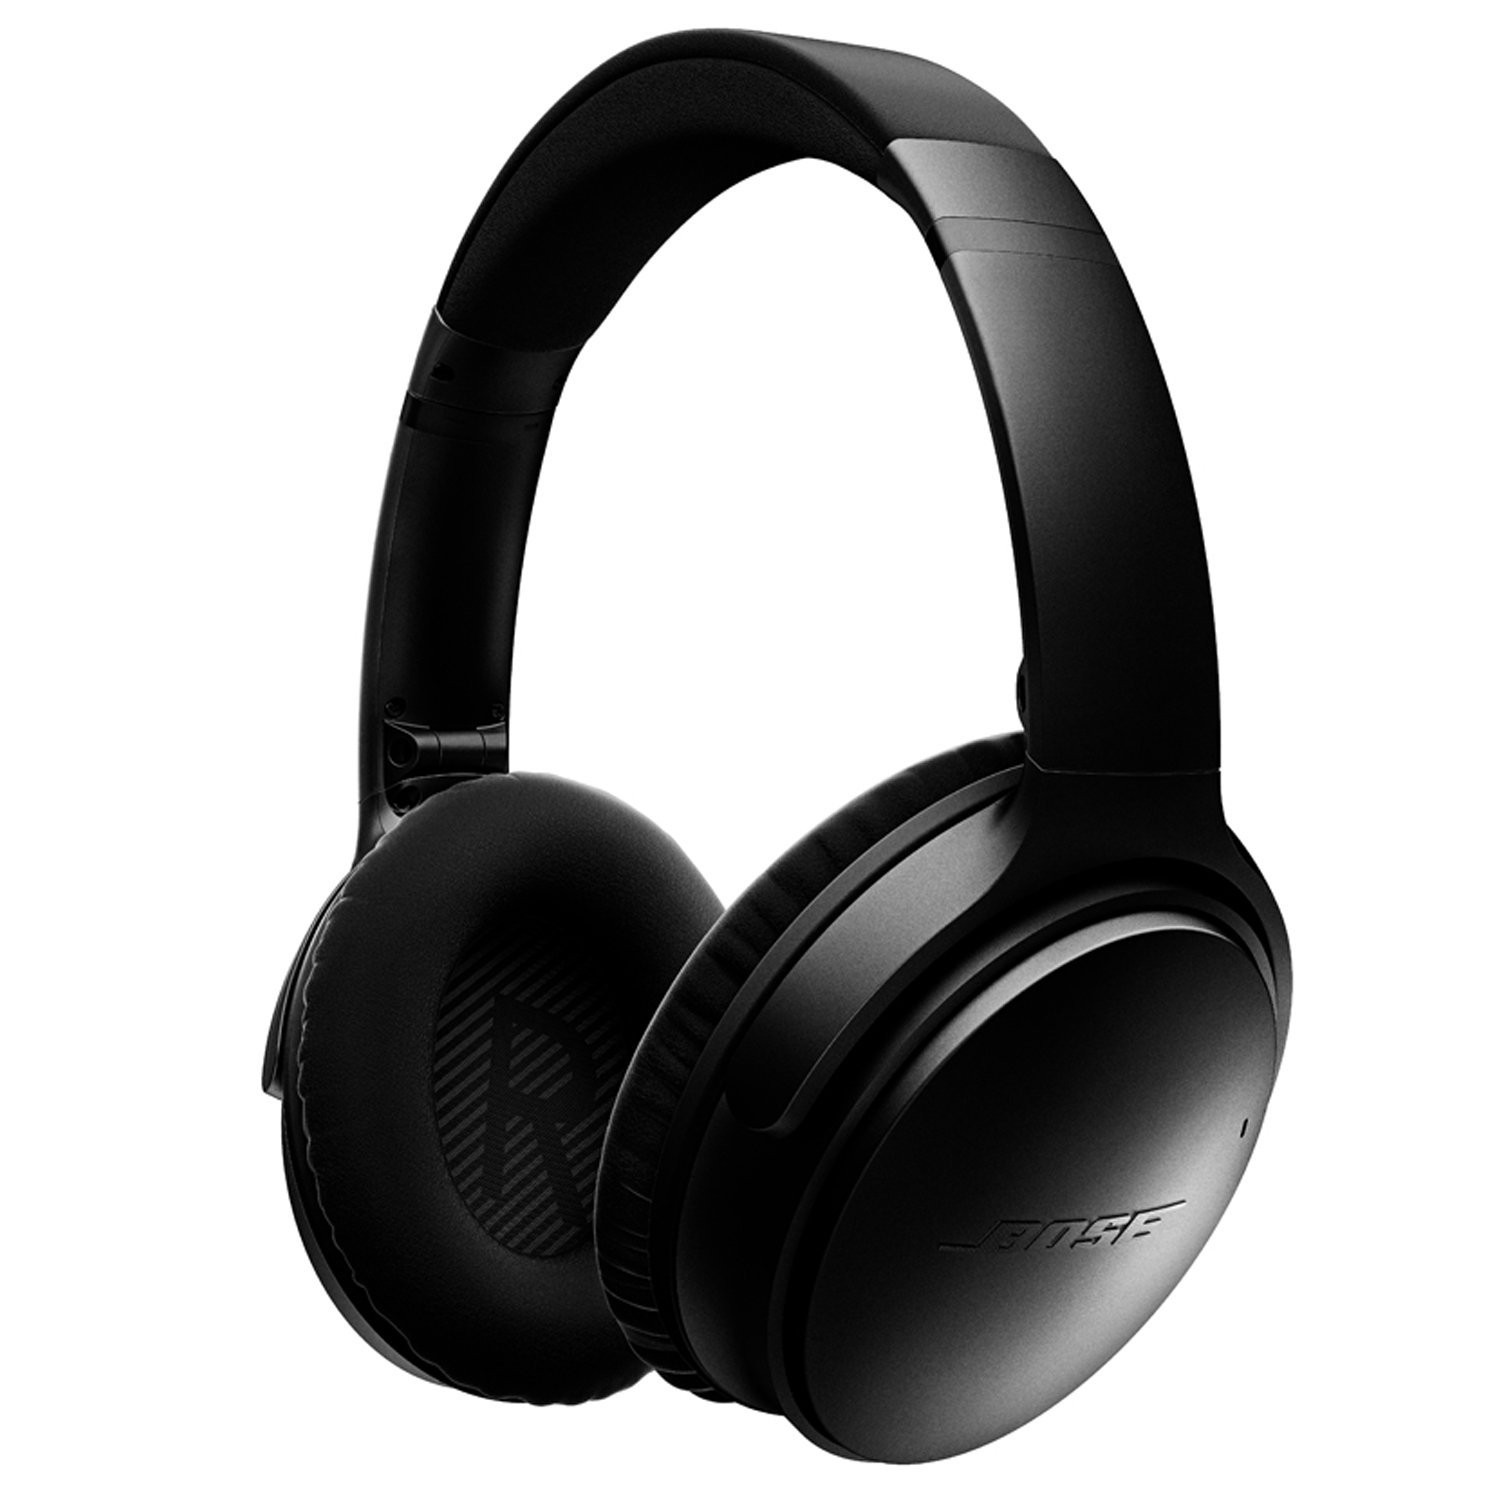 Amazon's huge Black Friday Bose sale is already going strong